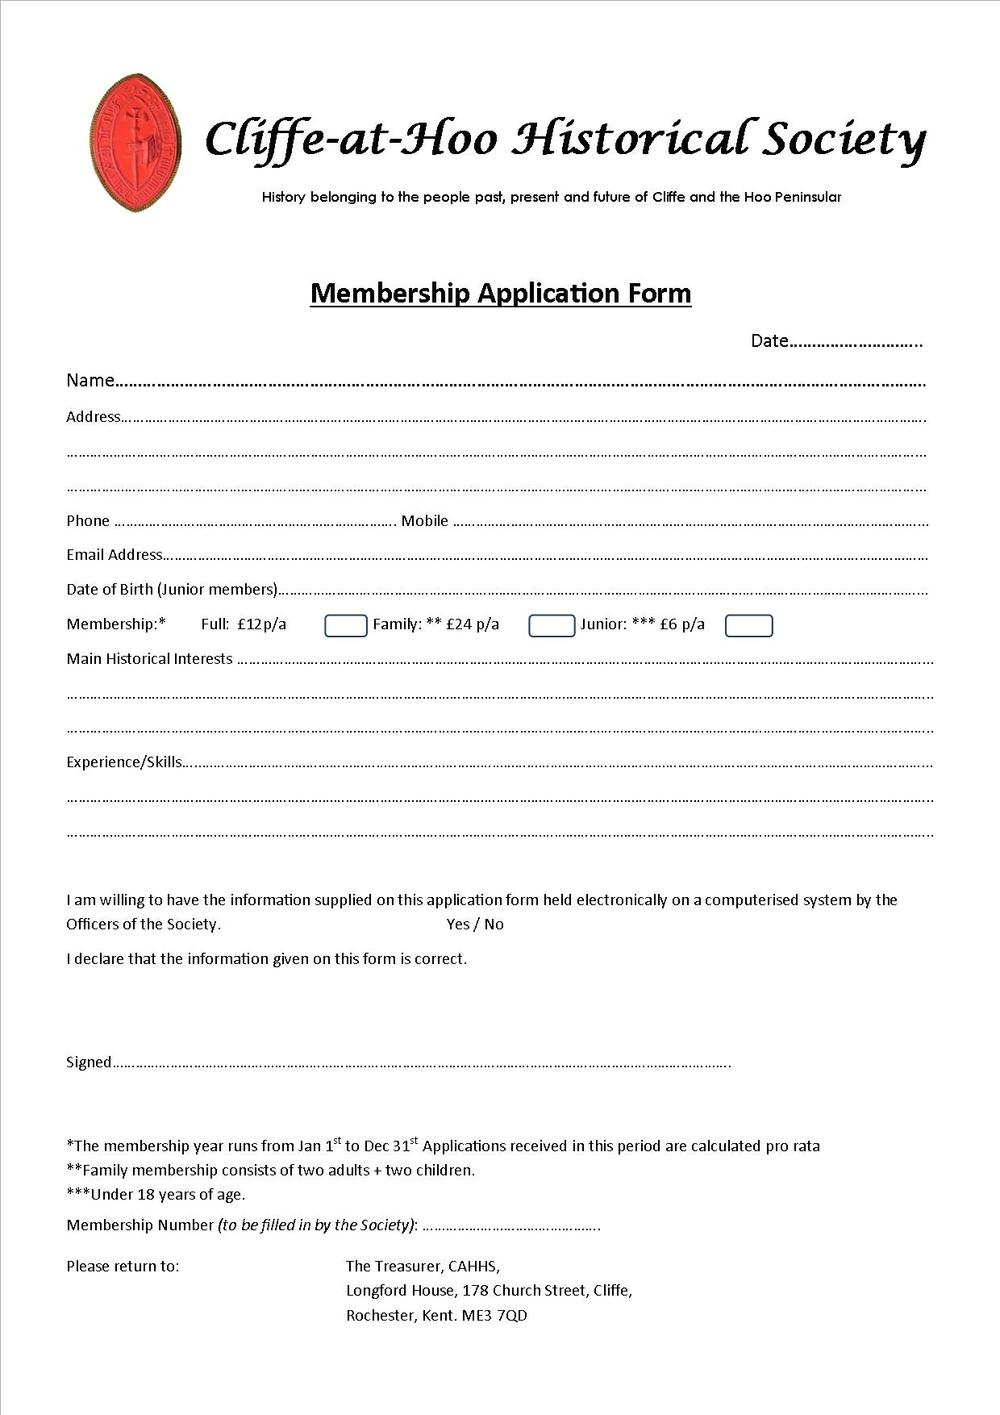 Membership Application Form.jpg